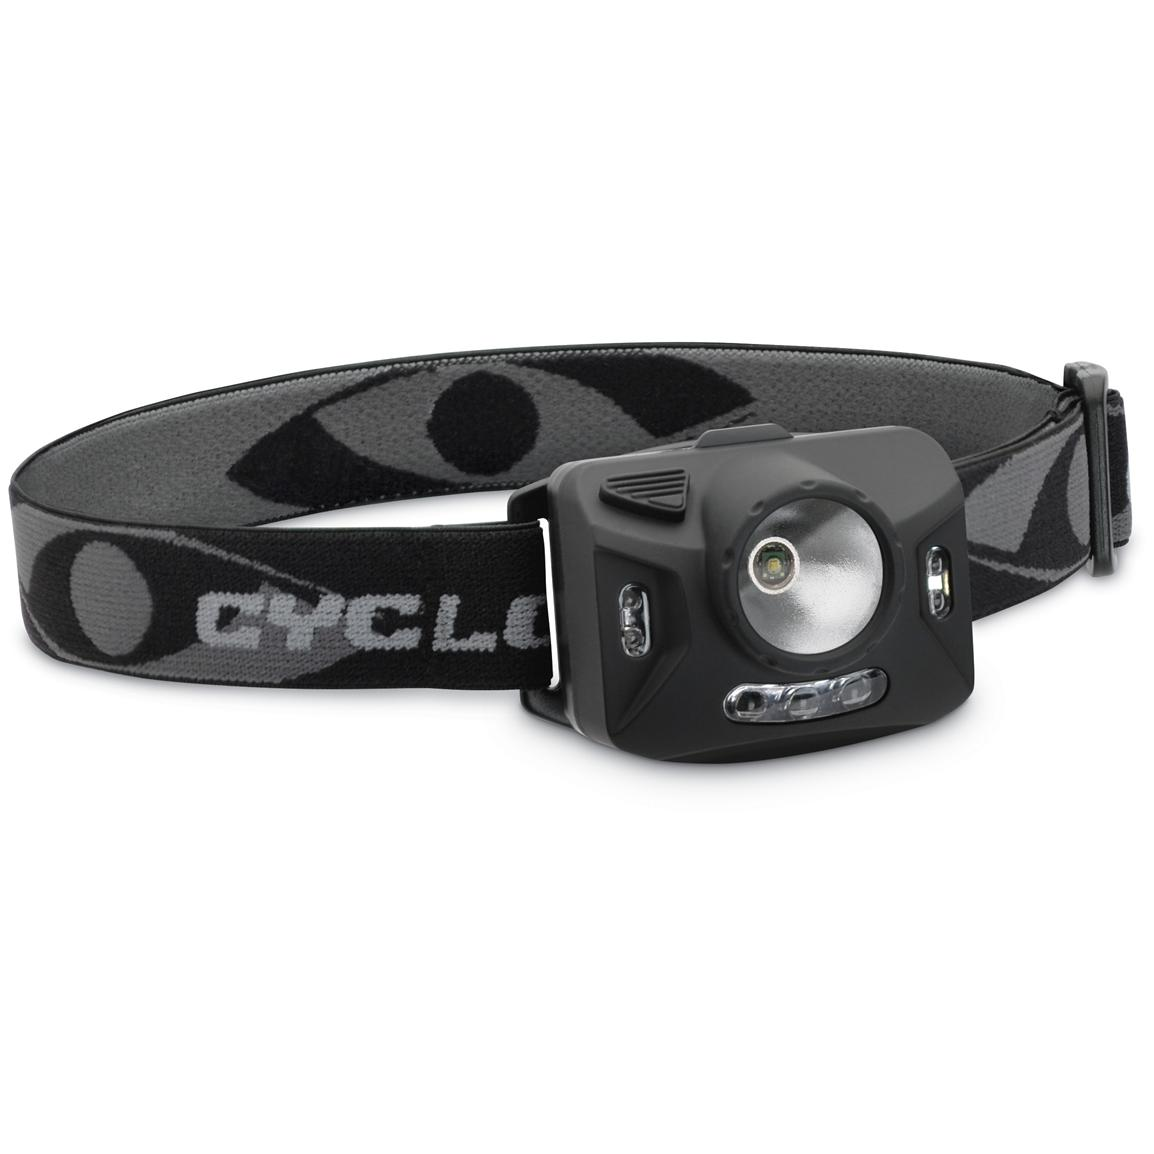 Cyclops® Ranger XP 126-lumen 4-stage Headlamp, Black